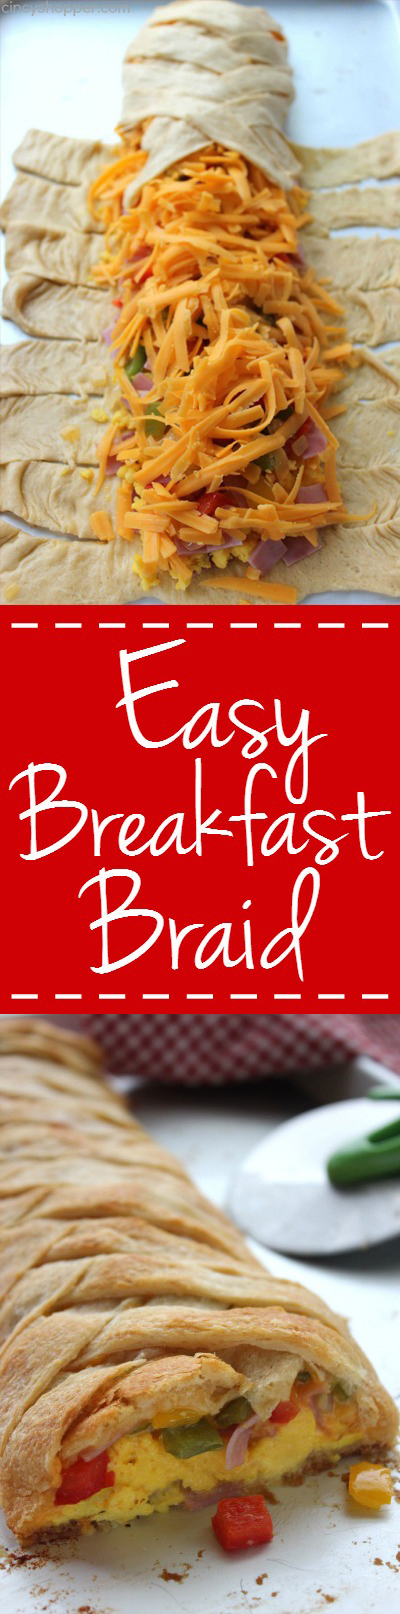 SUPER Easy Breakfast Braid - Loaded them up with your favorite omelette toppings. GREAT for feeding a crowd.